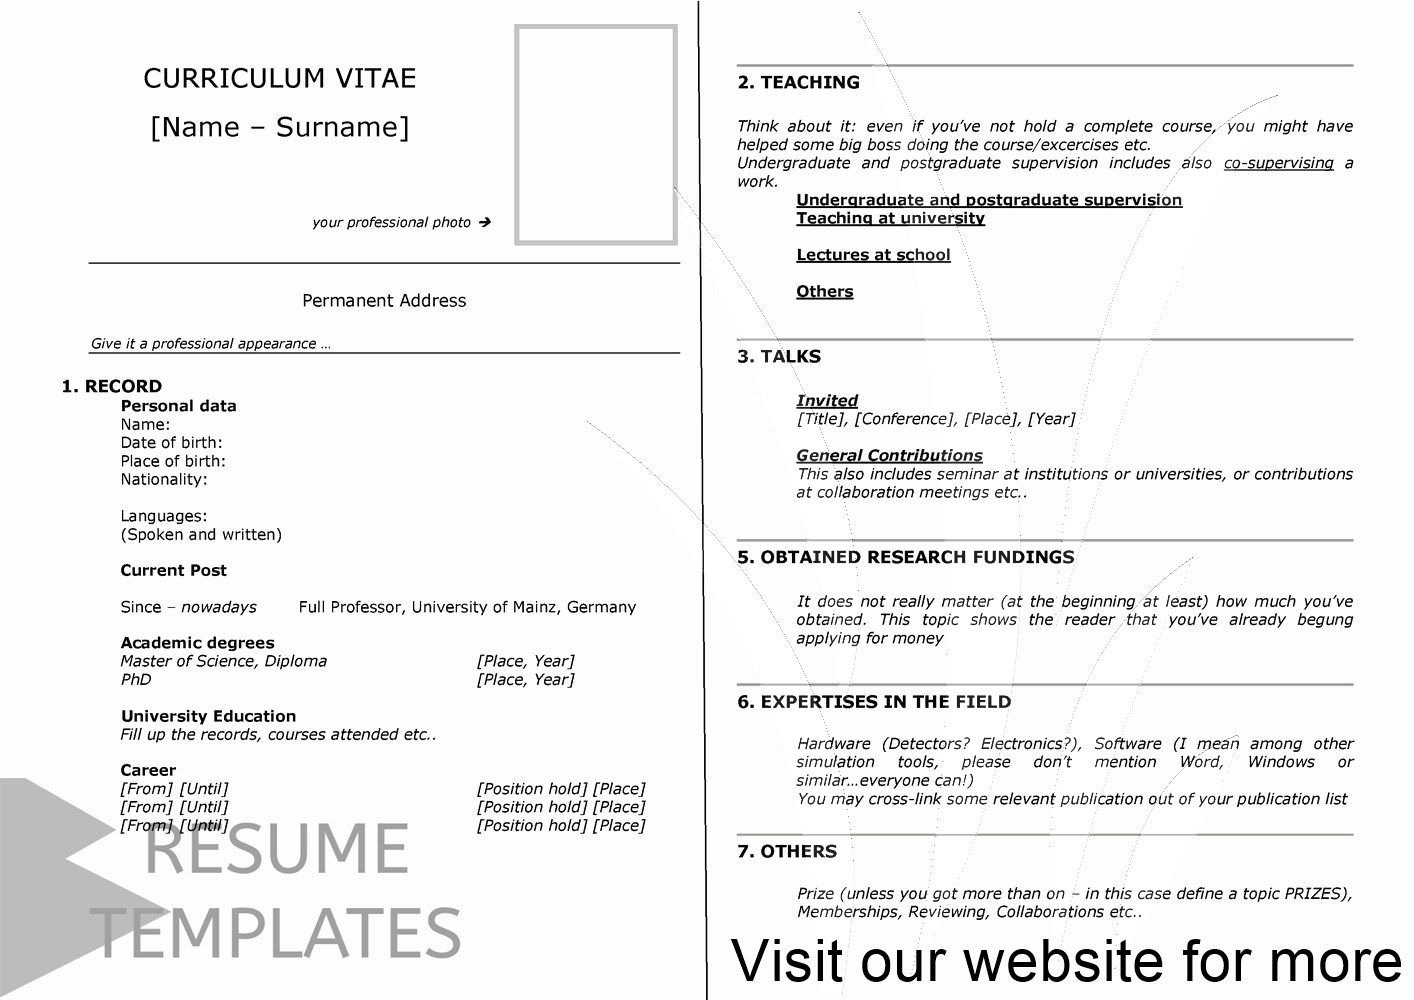 nursing resume template free in 2020 Resume template